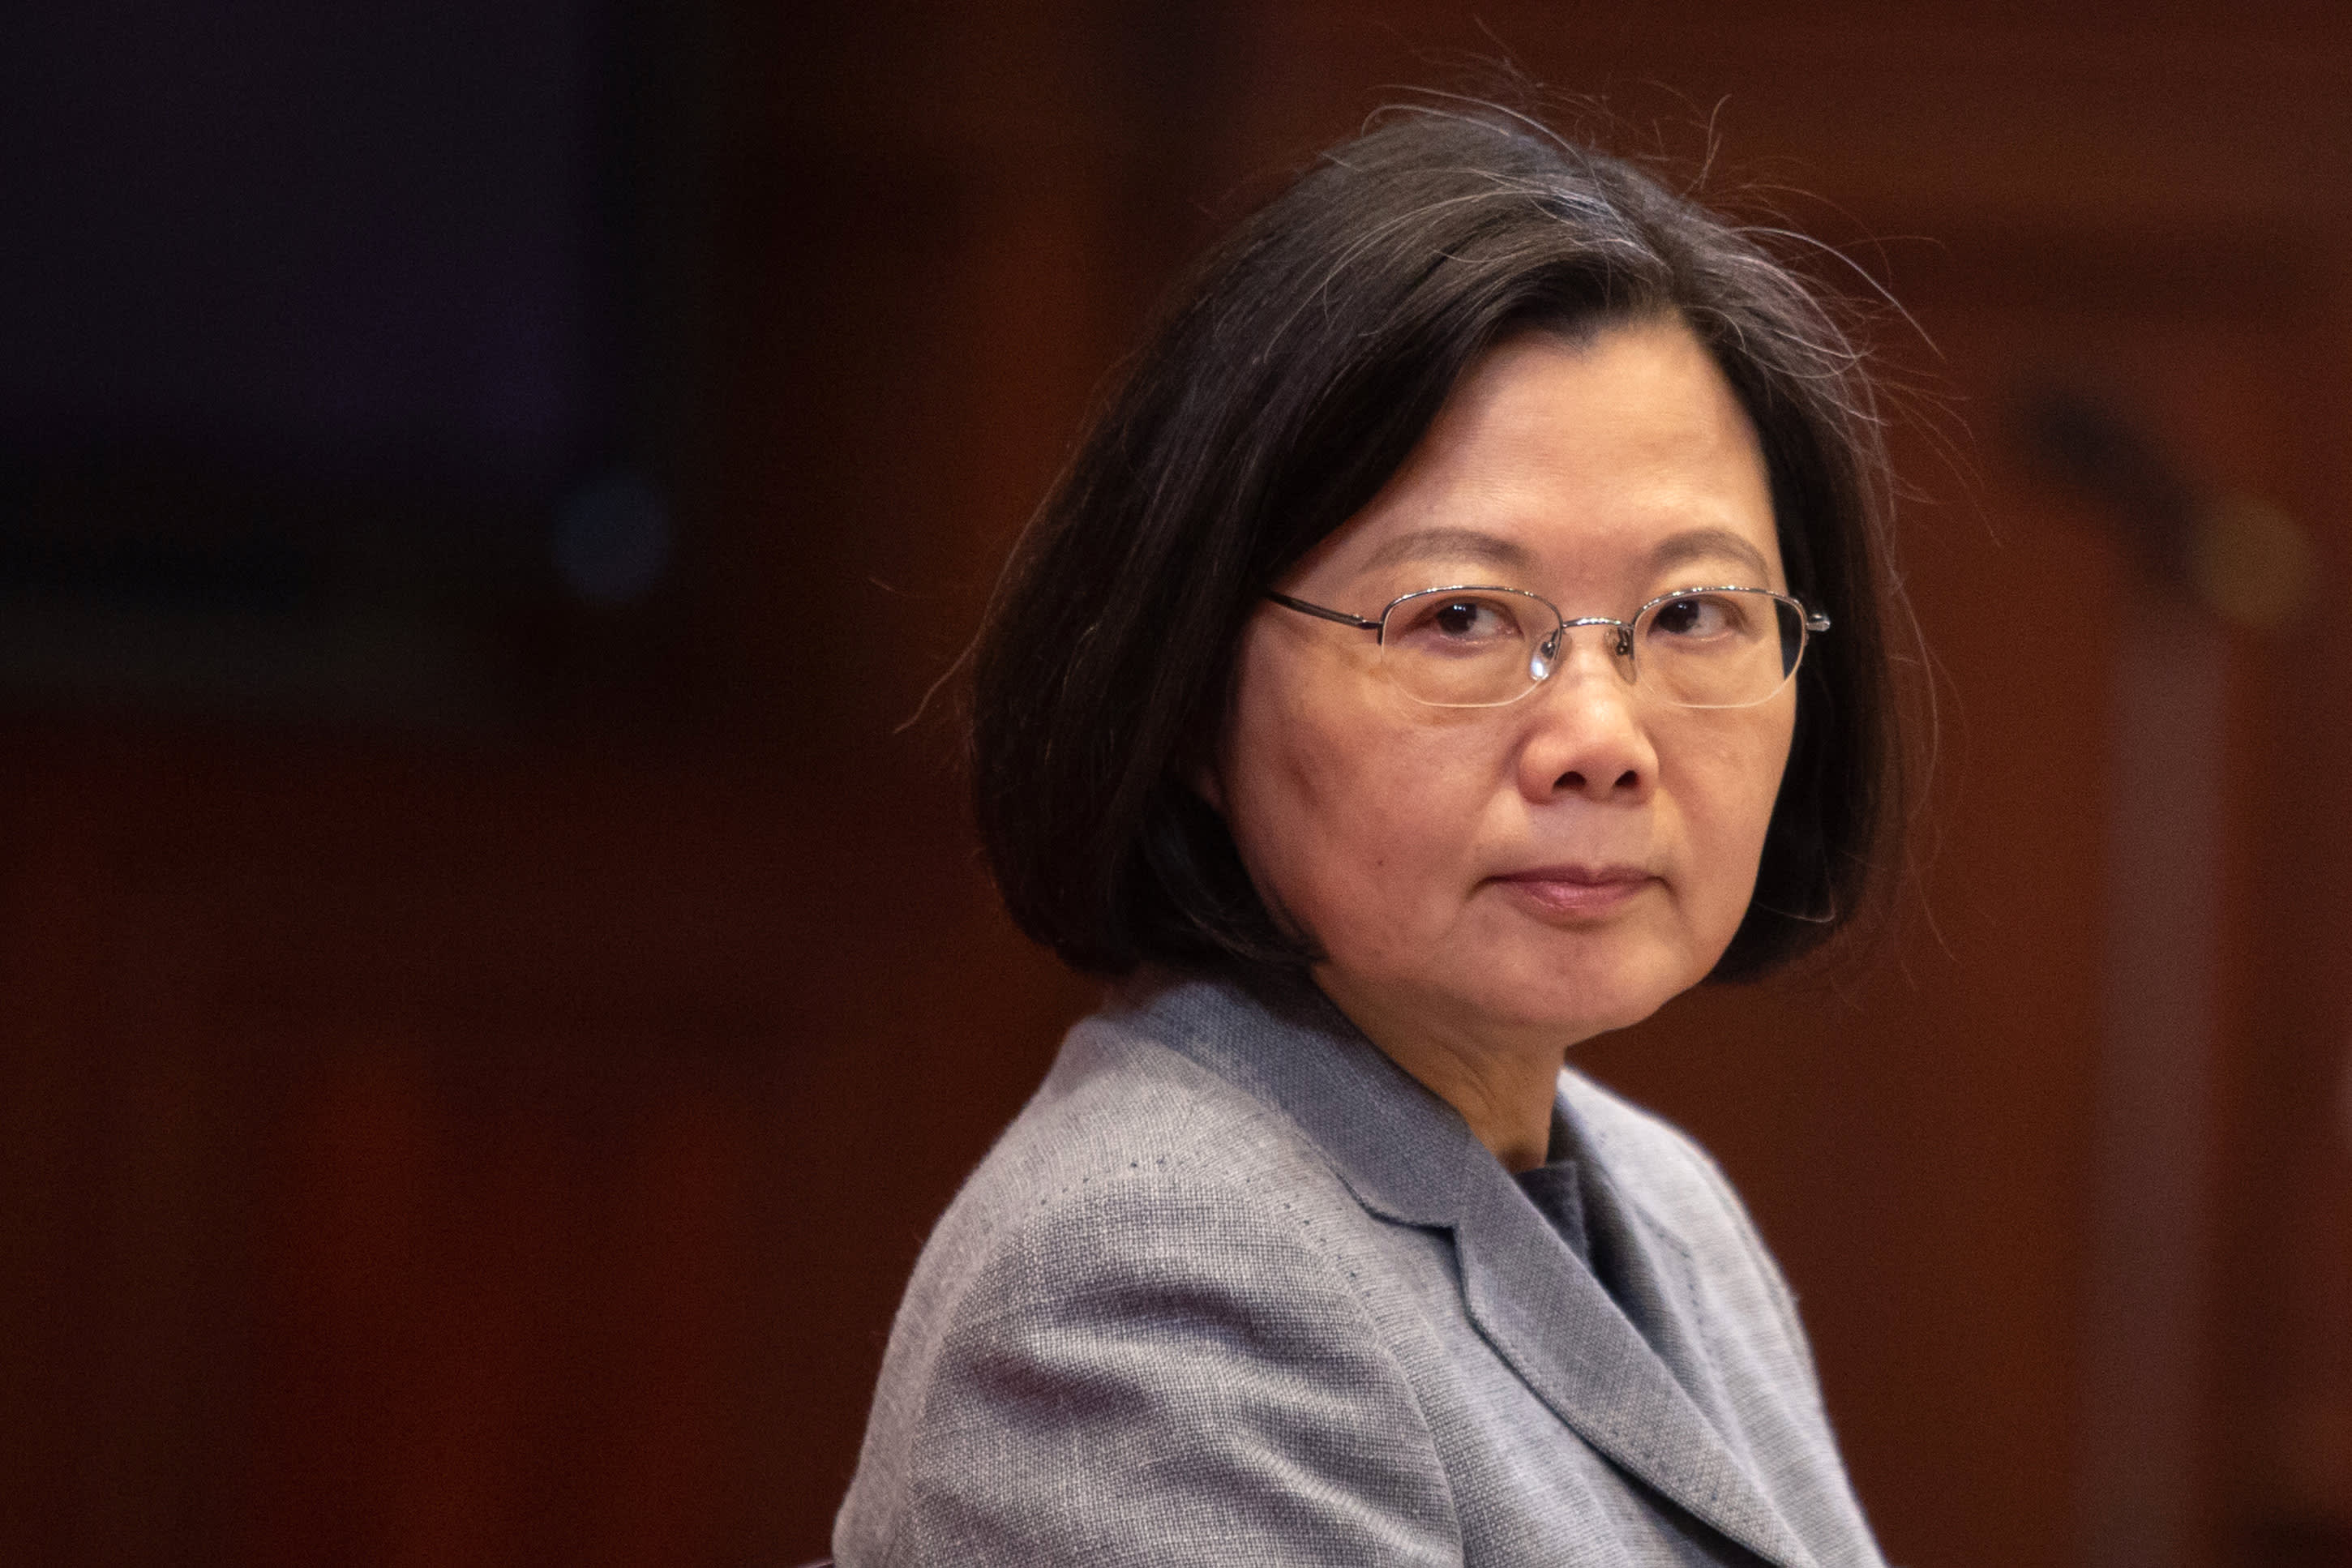 Taiwan's Tsai pledges support for people of Hong Kong after China proposes national security law thumbnail